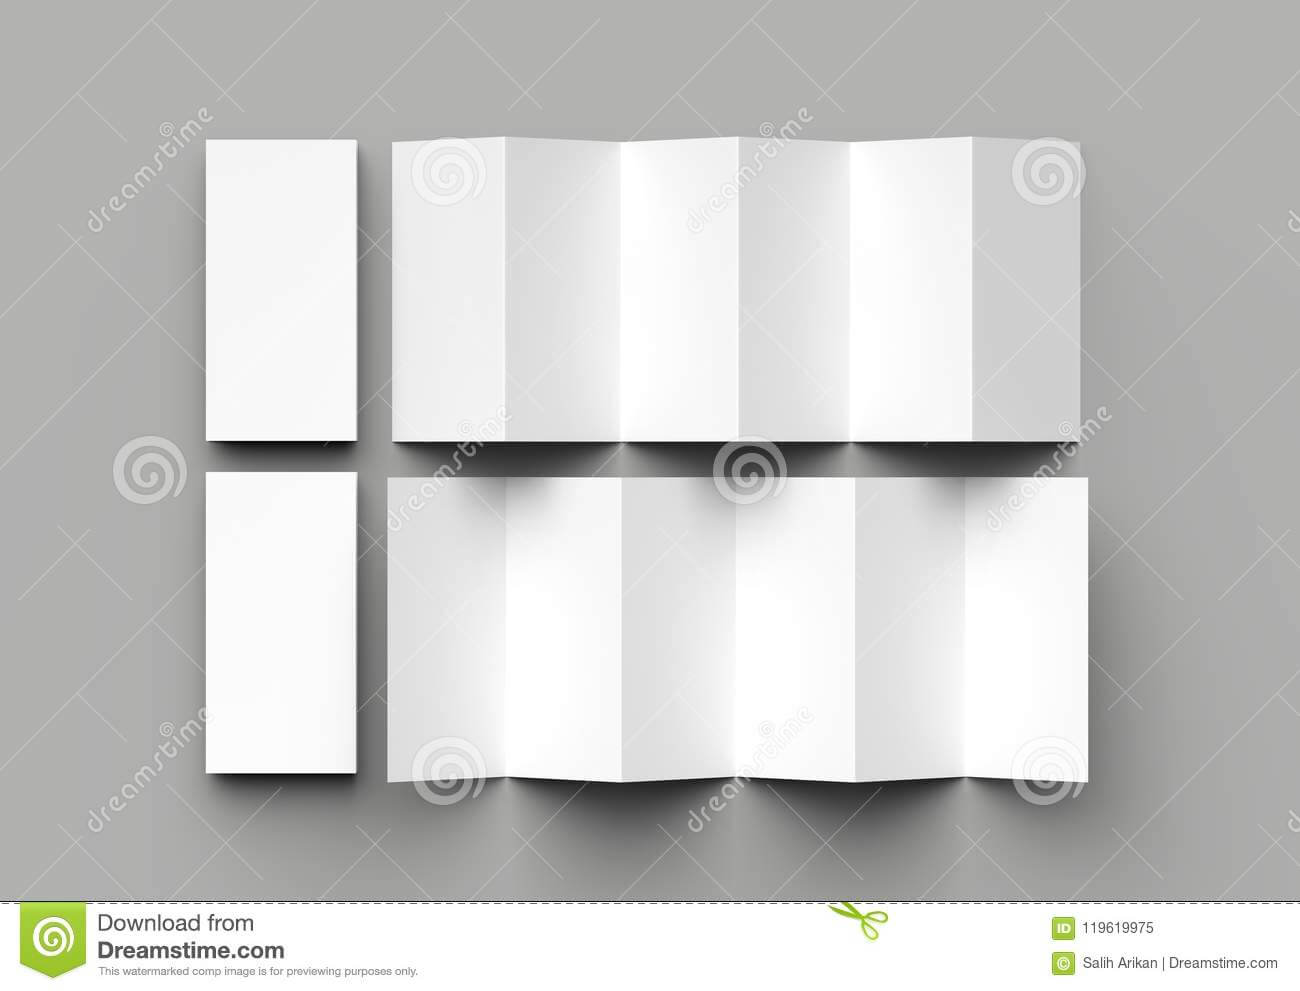 12 Page Leaflet, 6 Panel Accordion Fold - Z Fold Vertical For 6 Panel Brochure Template